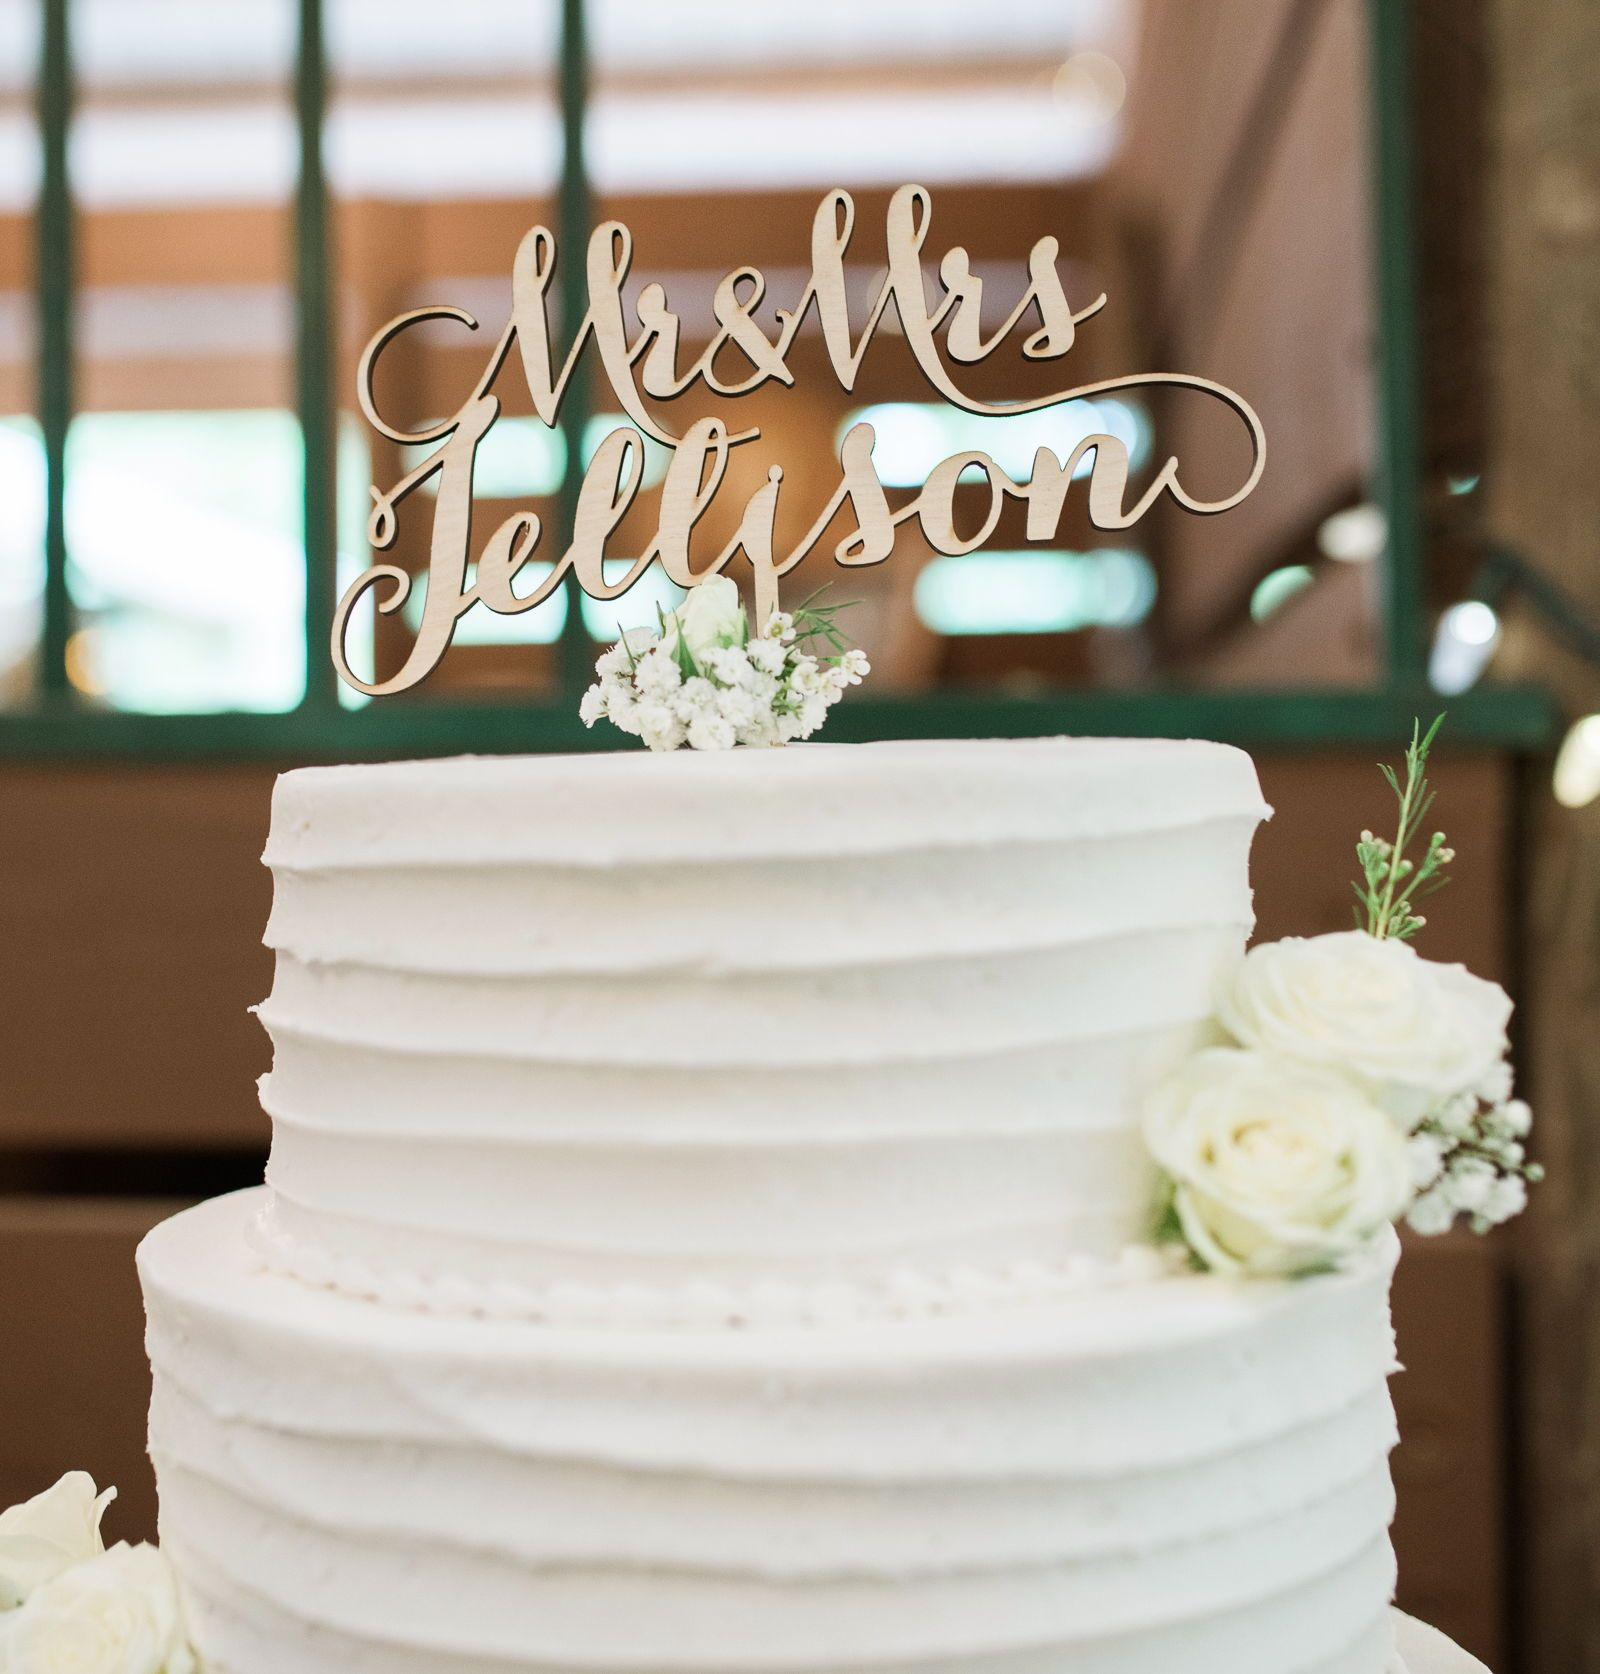 Wedding cake topper personalized mr u mrs last name gold or wood